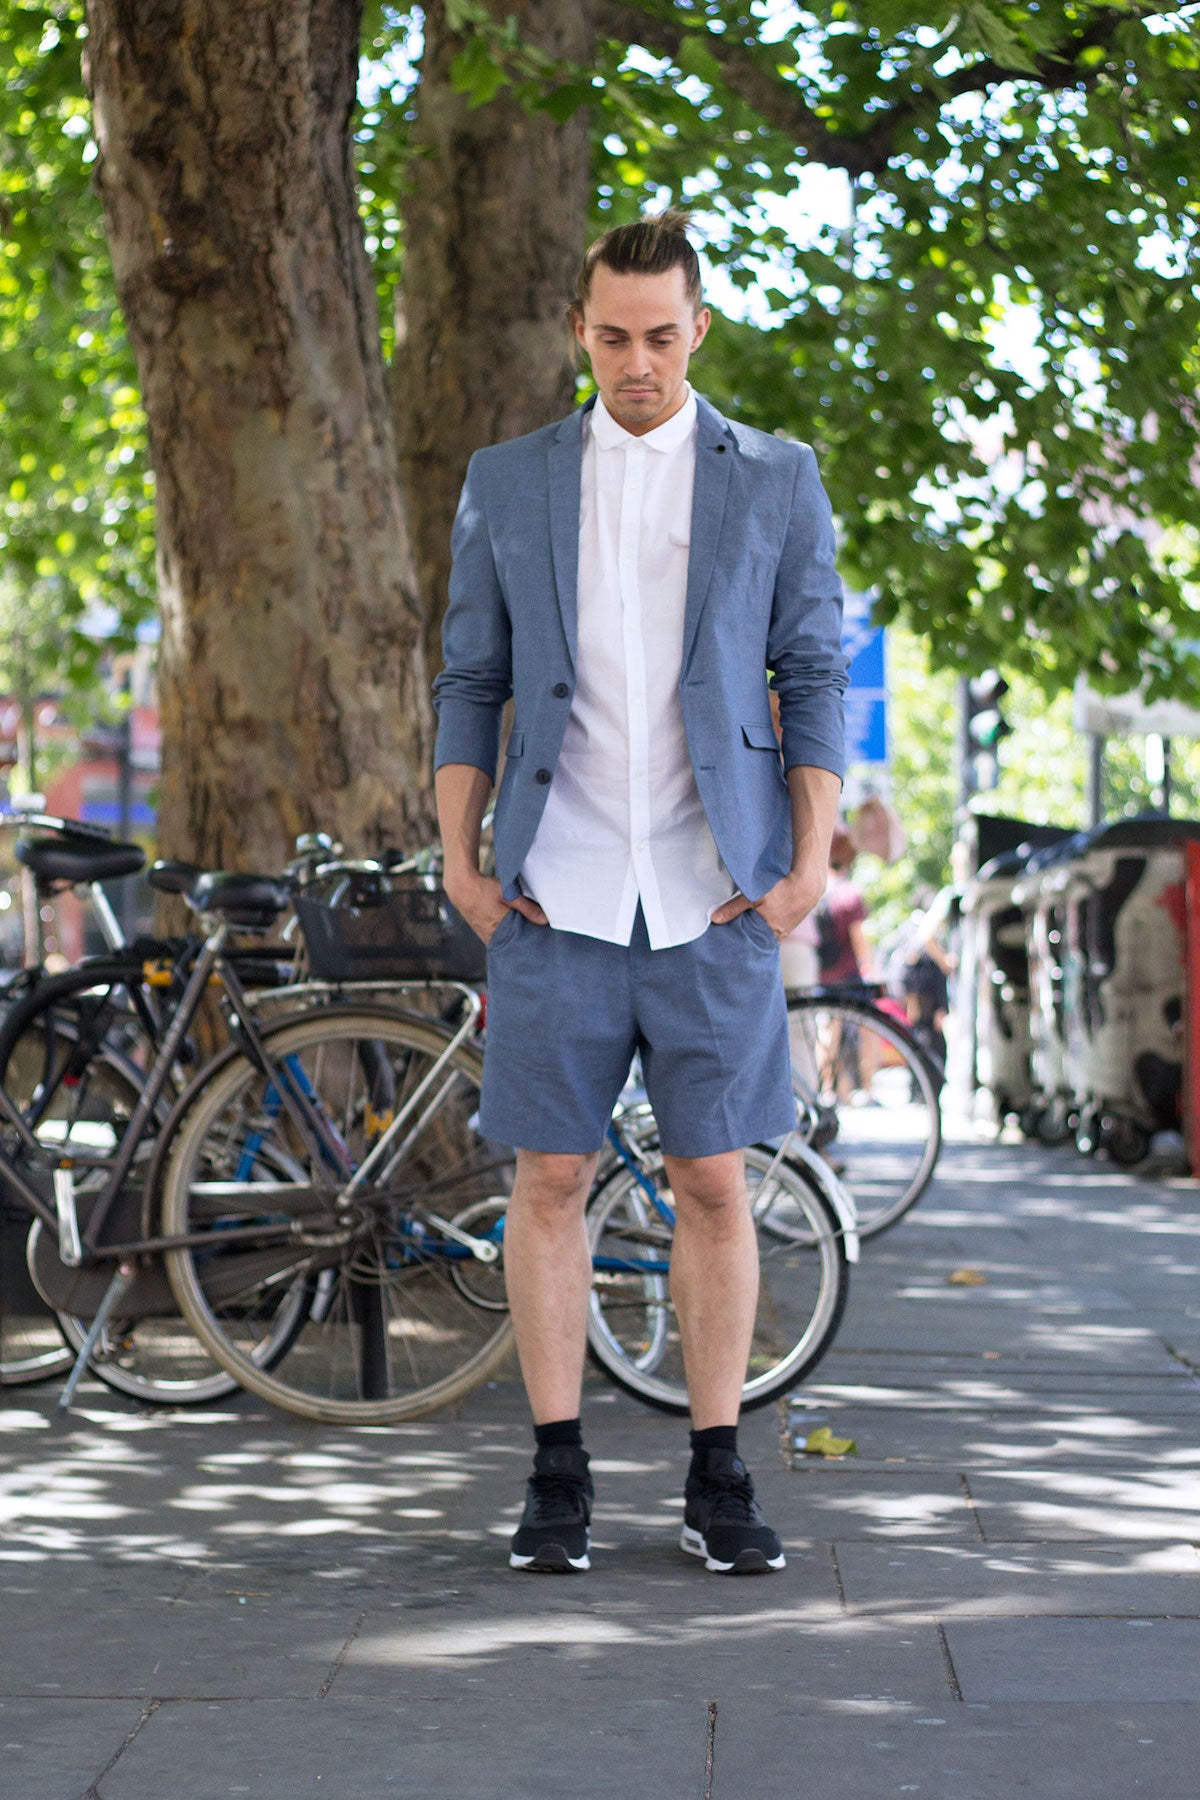 Street Style London Summer Tailoring Blue Short Suit